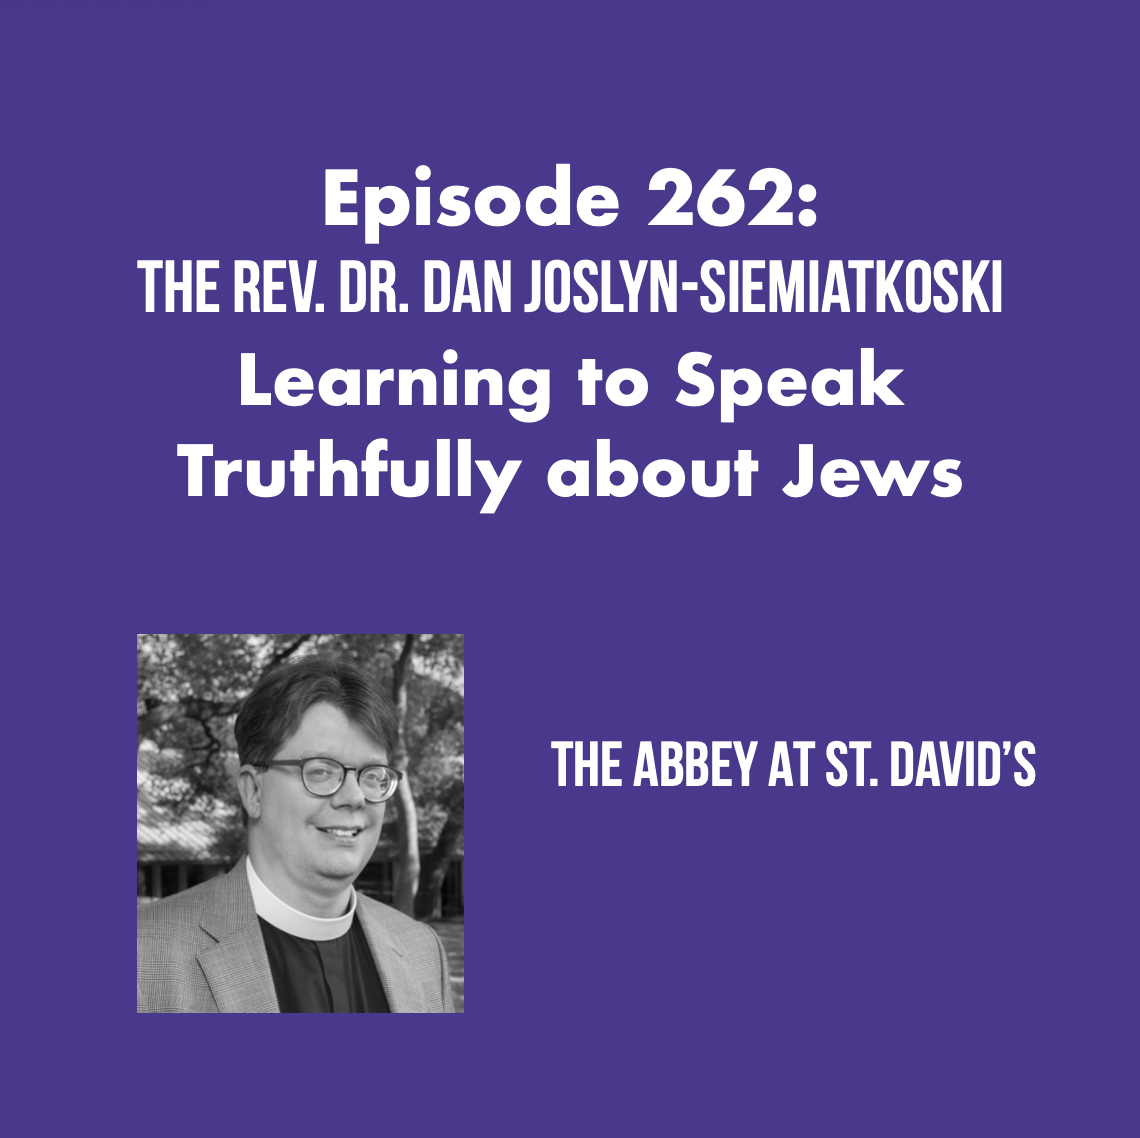 Episode 262: Learning To Speak Truthfully About Jews with The Rev. Dr. Dan Joslyn-Siemiatkoski